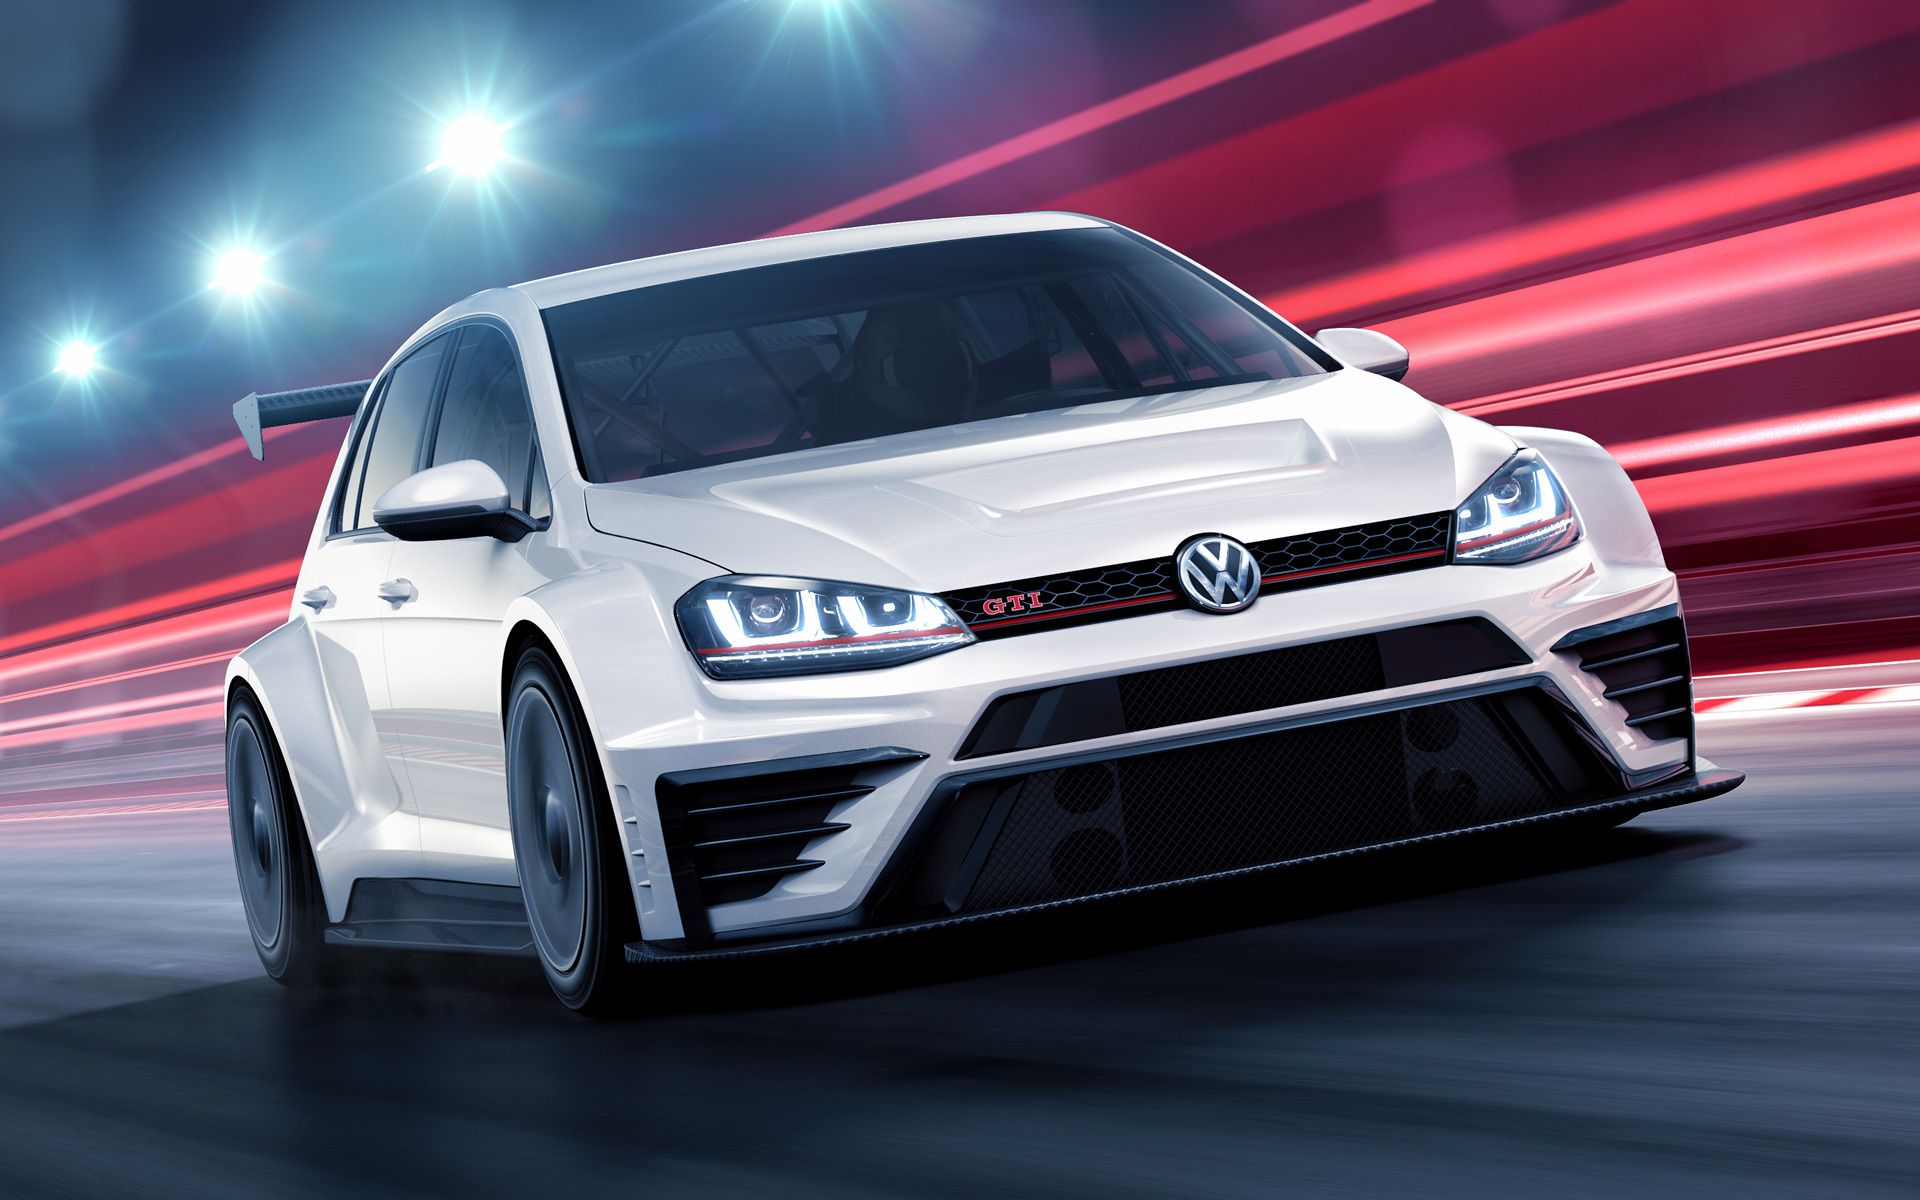 Volkswagen Golf GTI TCR (2016) Wallpapers and HD Images - Car Pixel